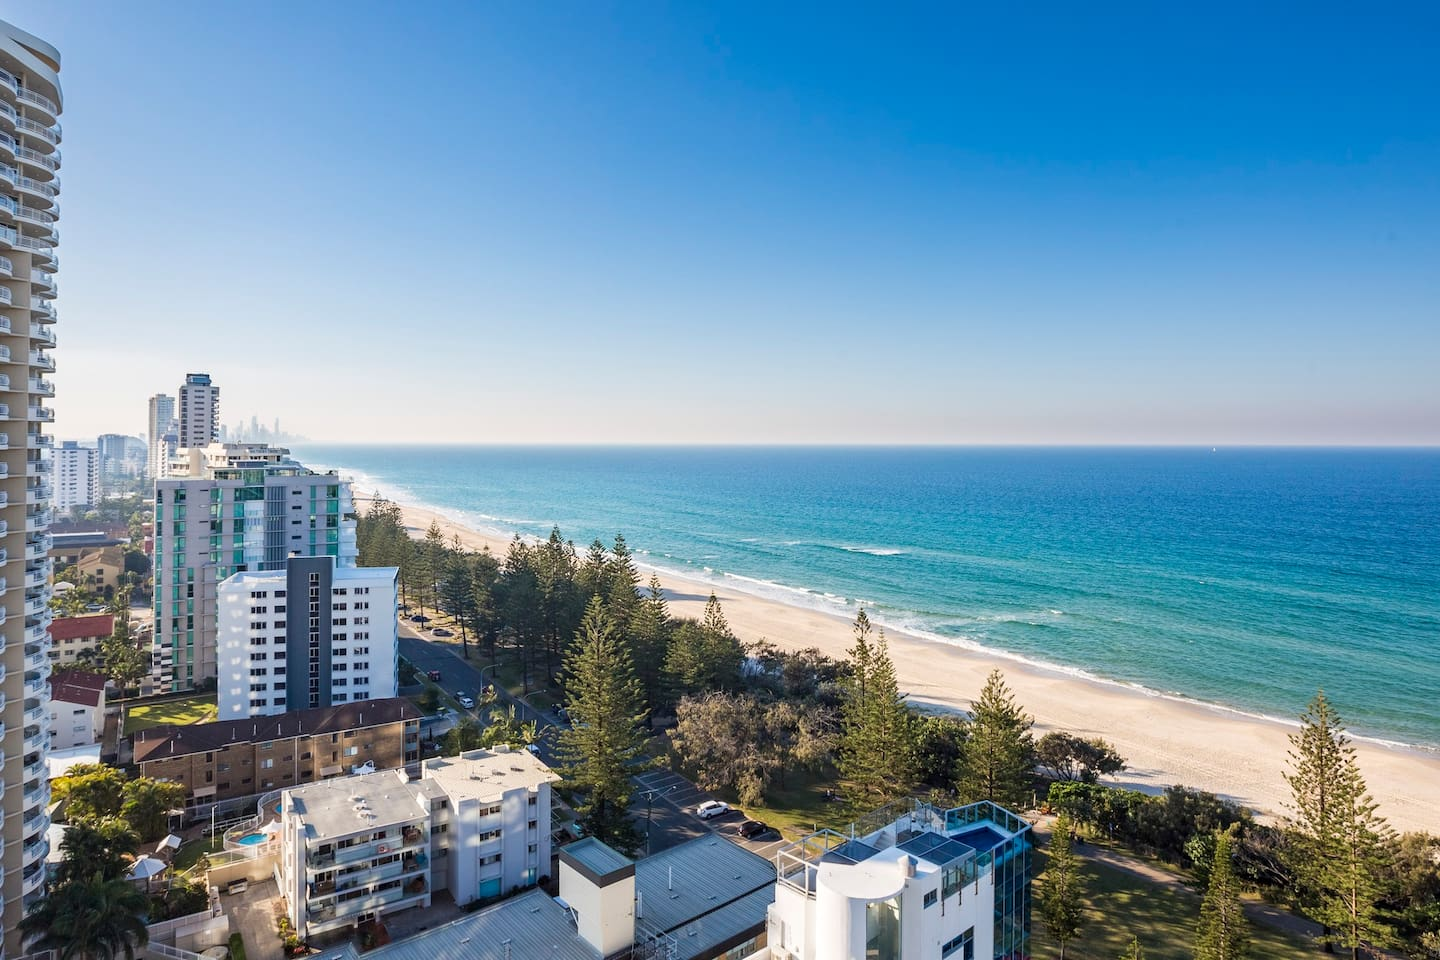 Views north to Surfers Paradise & beyond